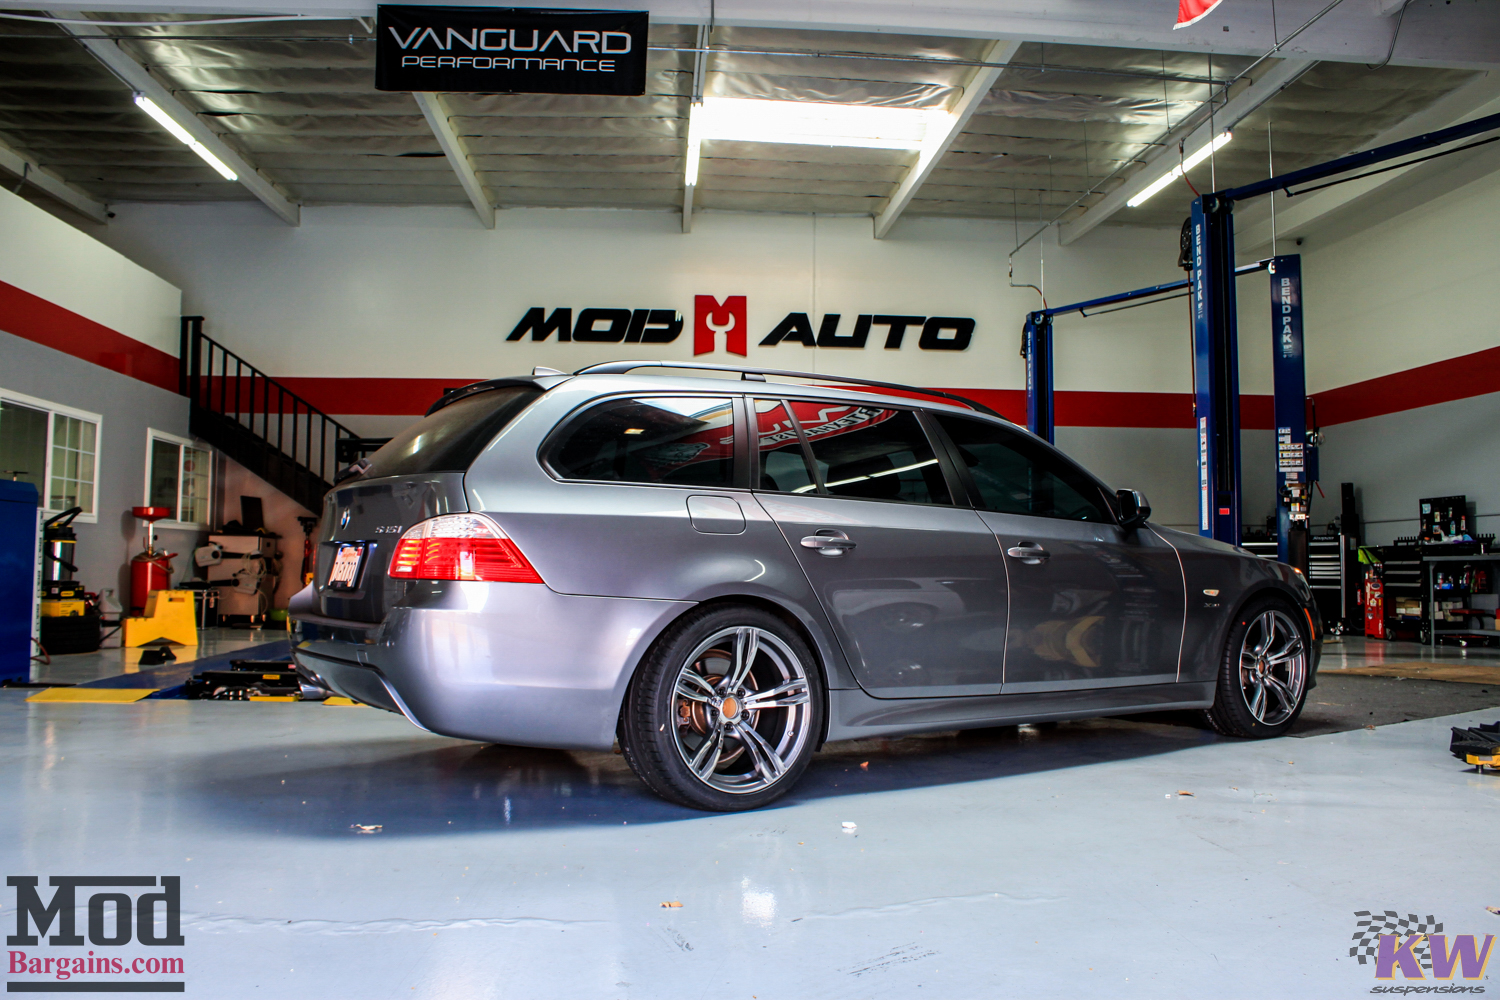 E61 Bmw 535i Xdrive Touring On Kw Coilovers Modauto